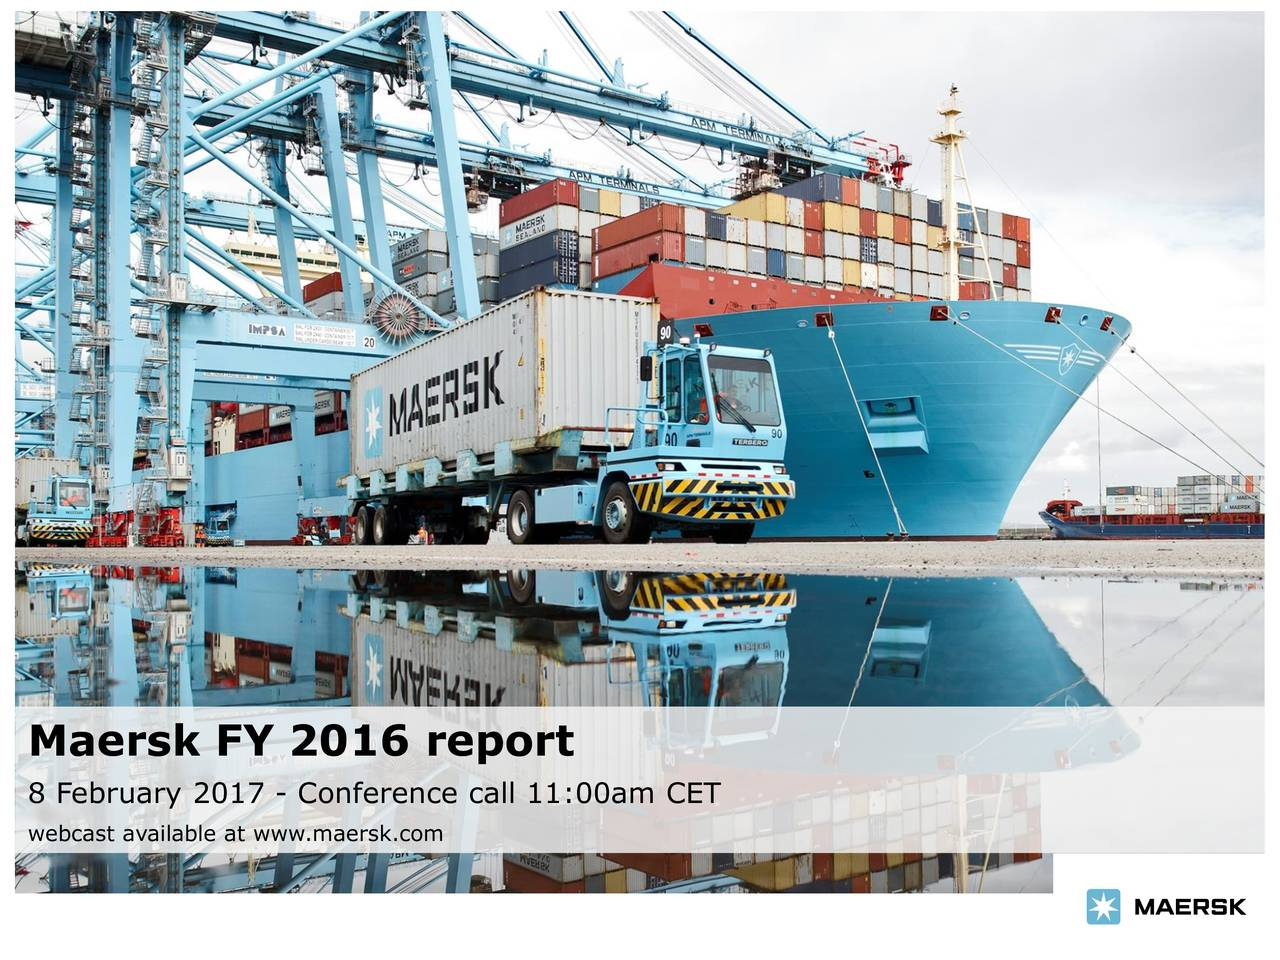 8 February 2017 - Conference call 11:00am CET webcast available at www.maersk.com